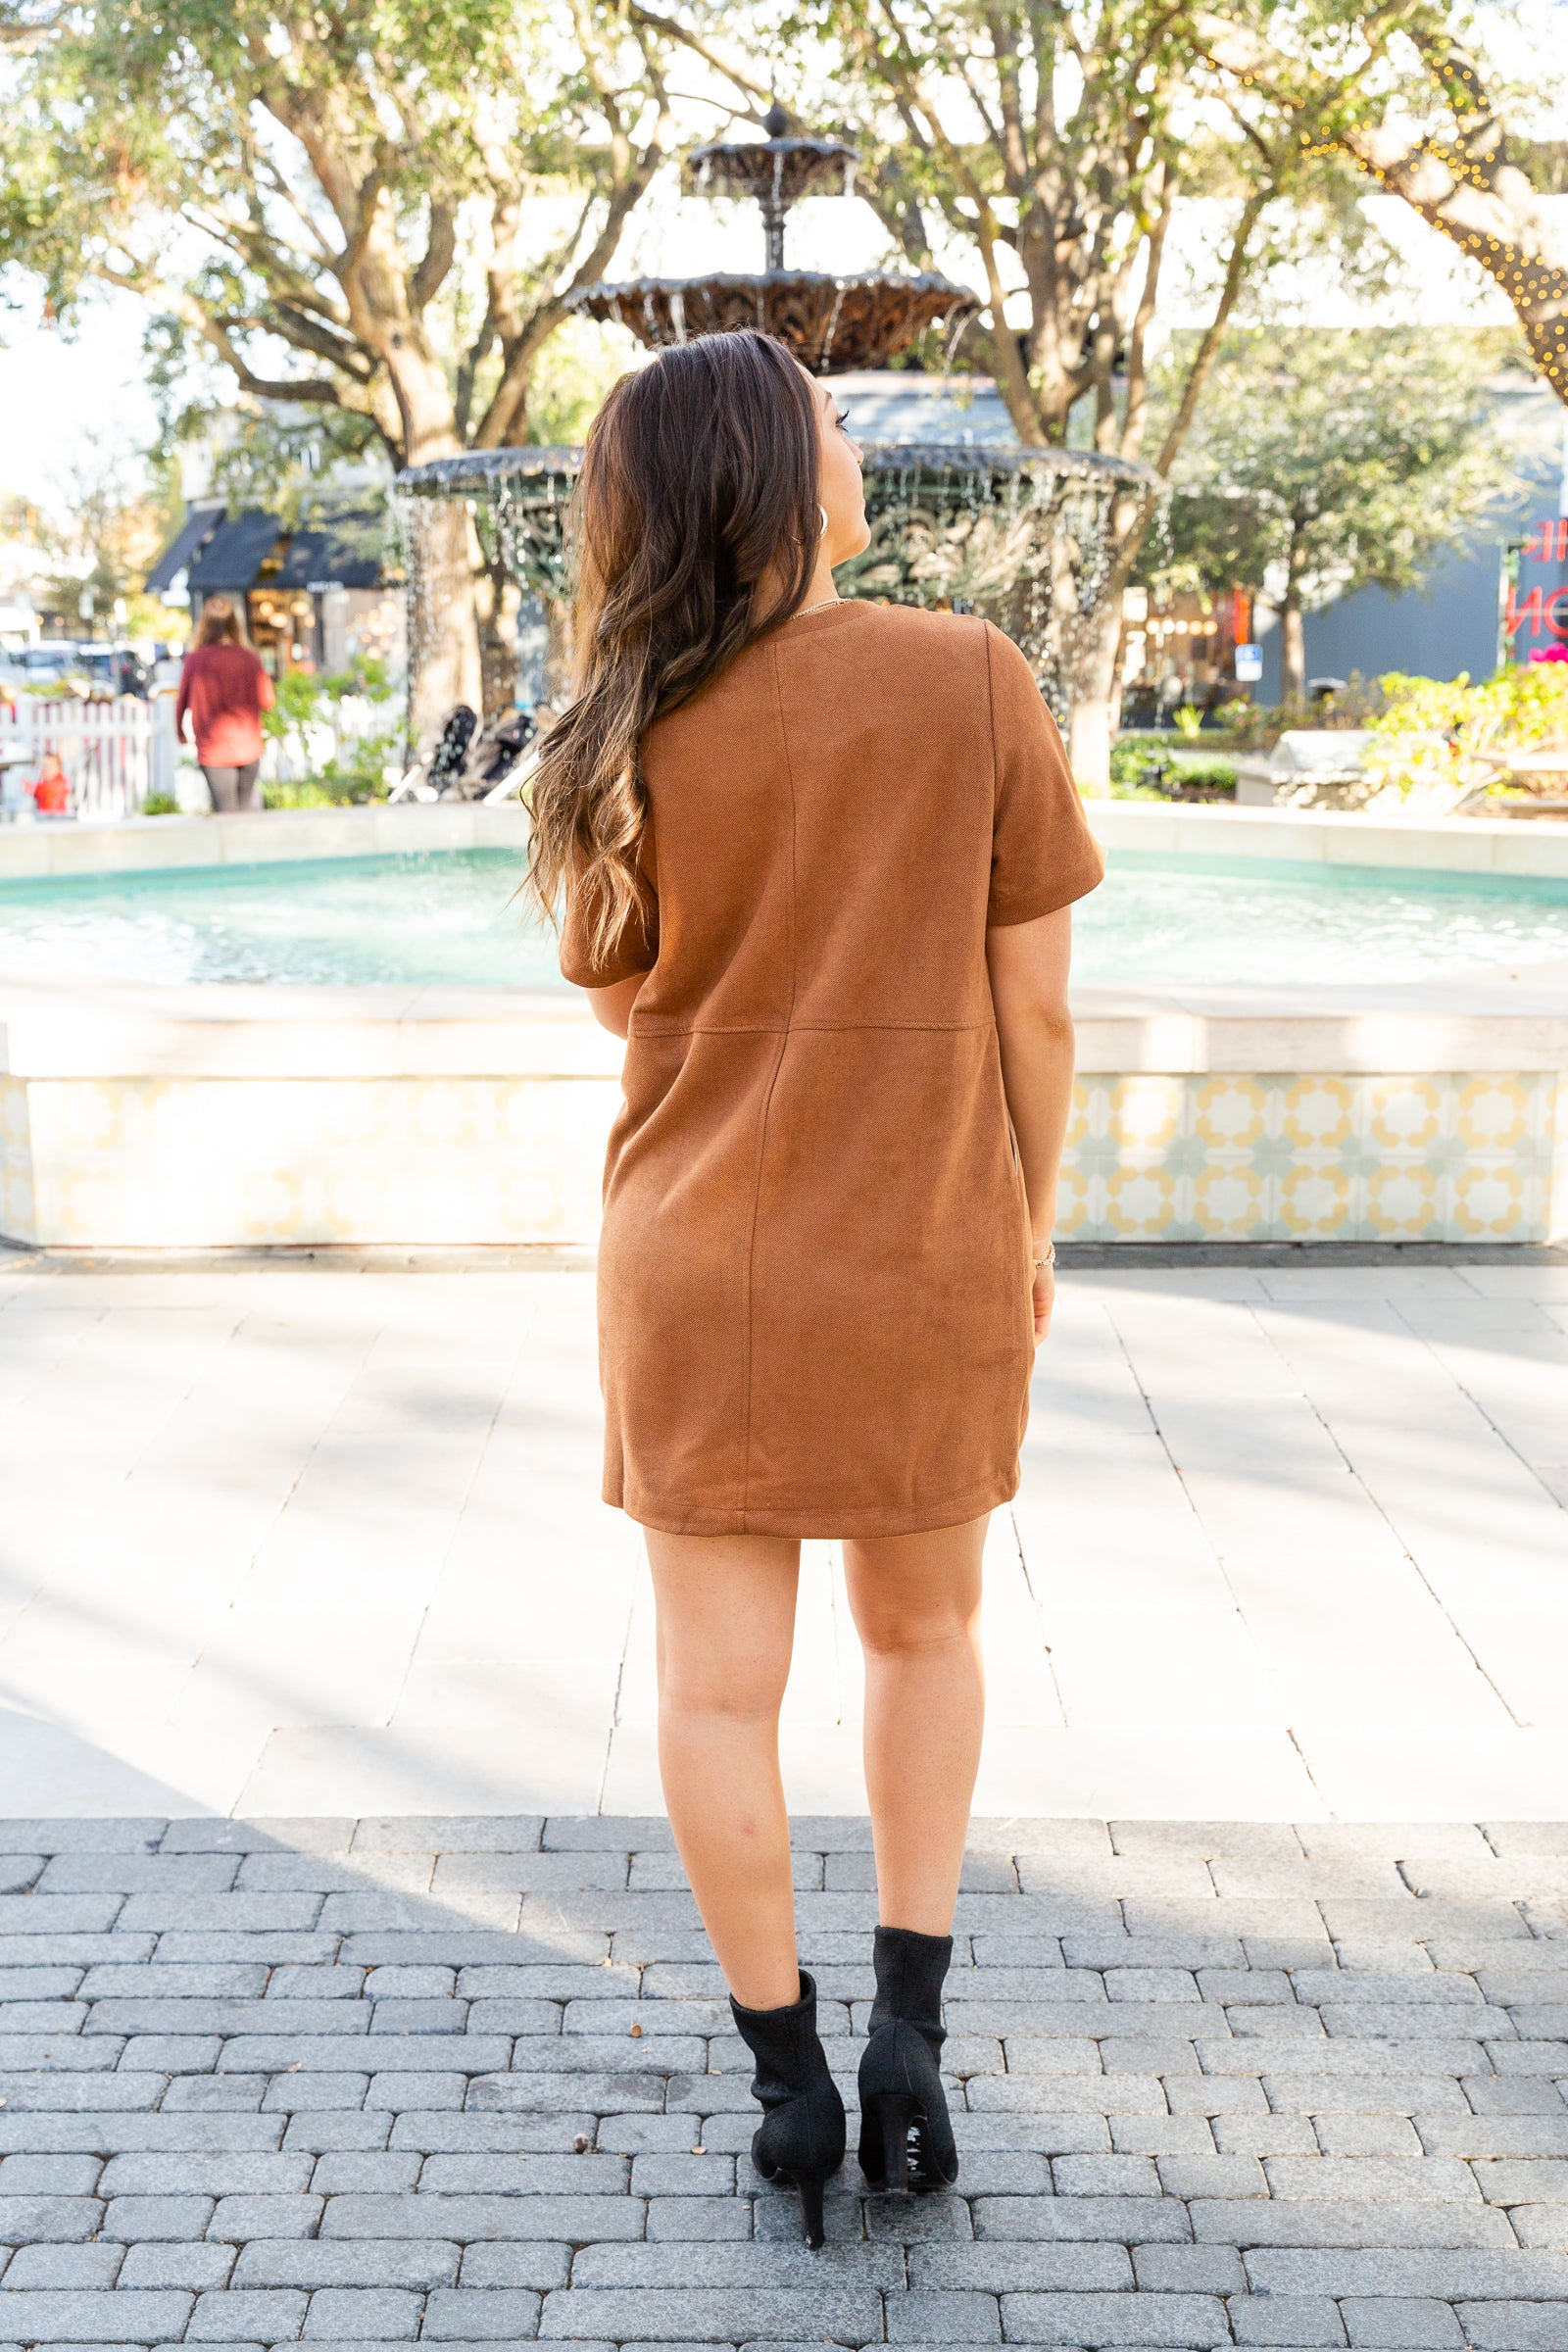 This comfortable, dual-layered dress has short sleeves that attach to a banded u-neckline and leads to a paneled and relaxed shift dress silhouette with side pockets.